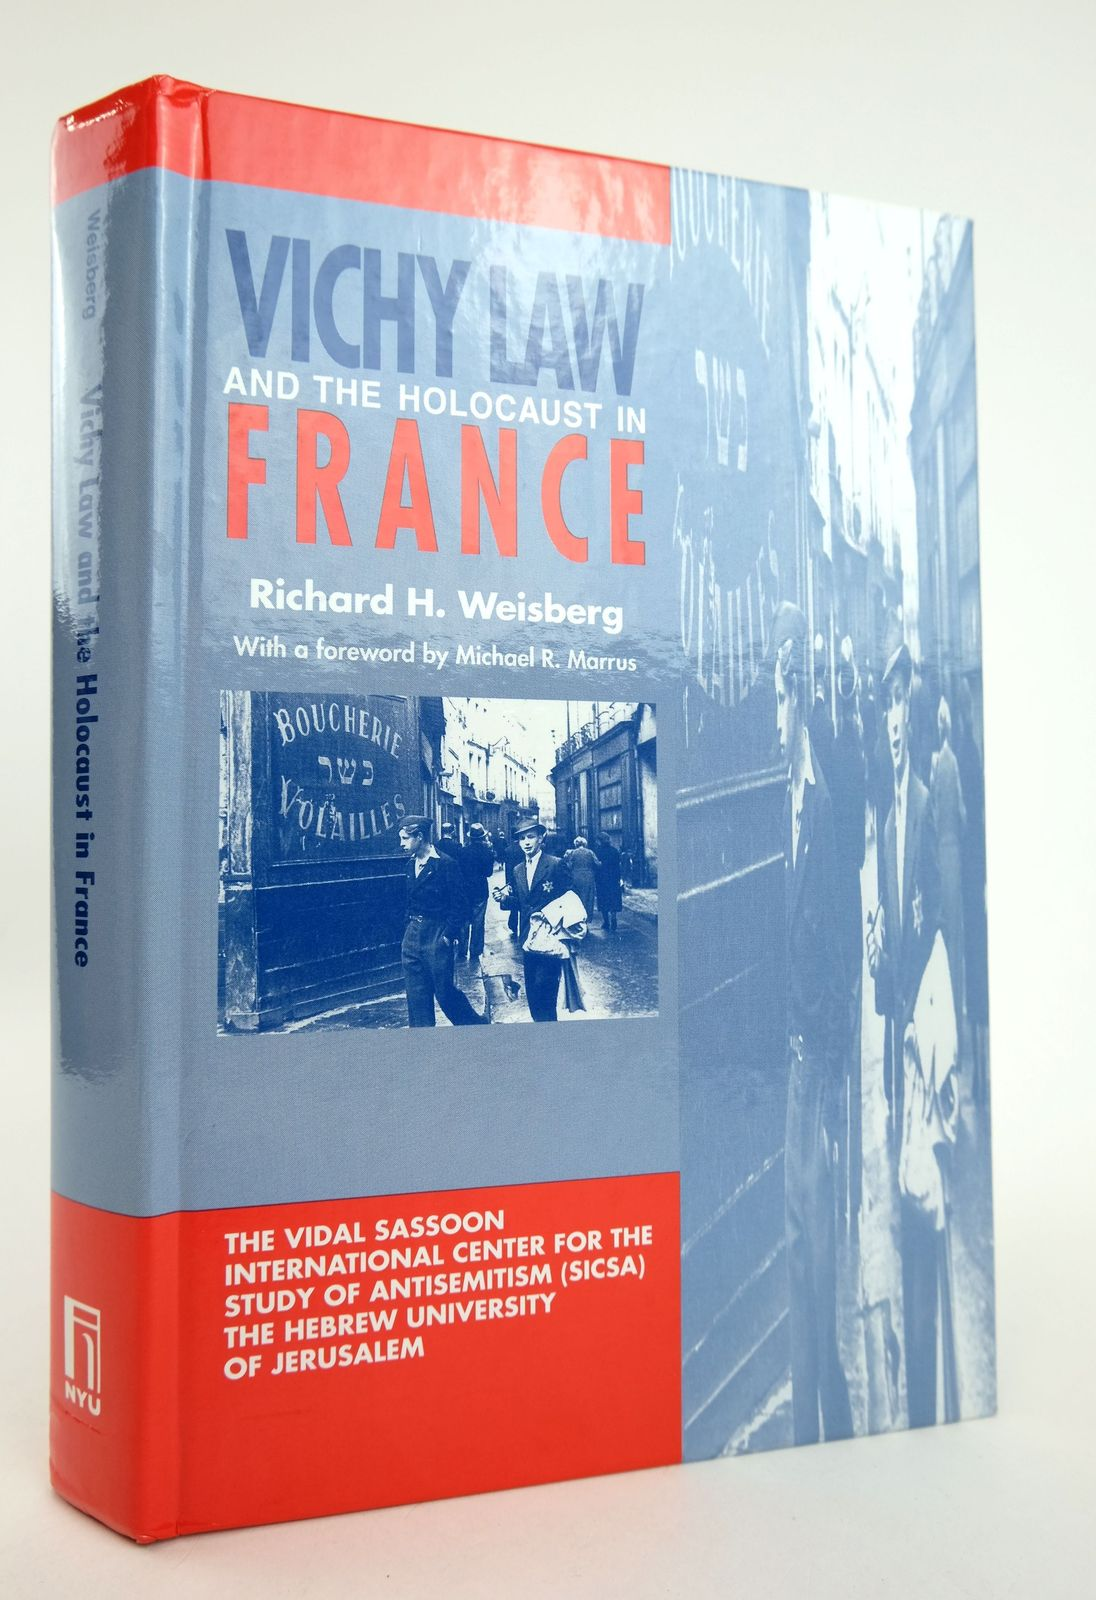 Photo of VICHY LAW AND THE HOLOCAUST IN FRANCE written by Weisberg, Richard H. published by New York University Press (STOCK CODE: 1818906)  for sale by Stella & Rose's Books